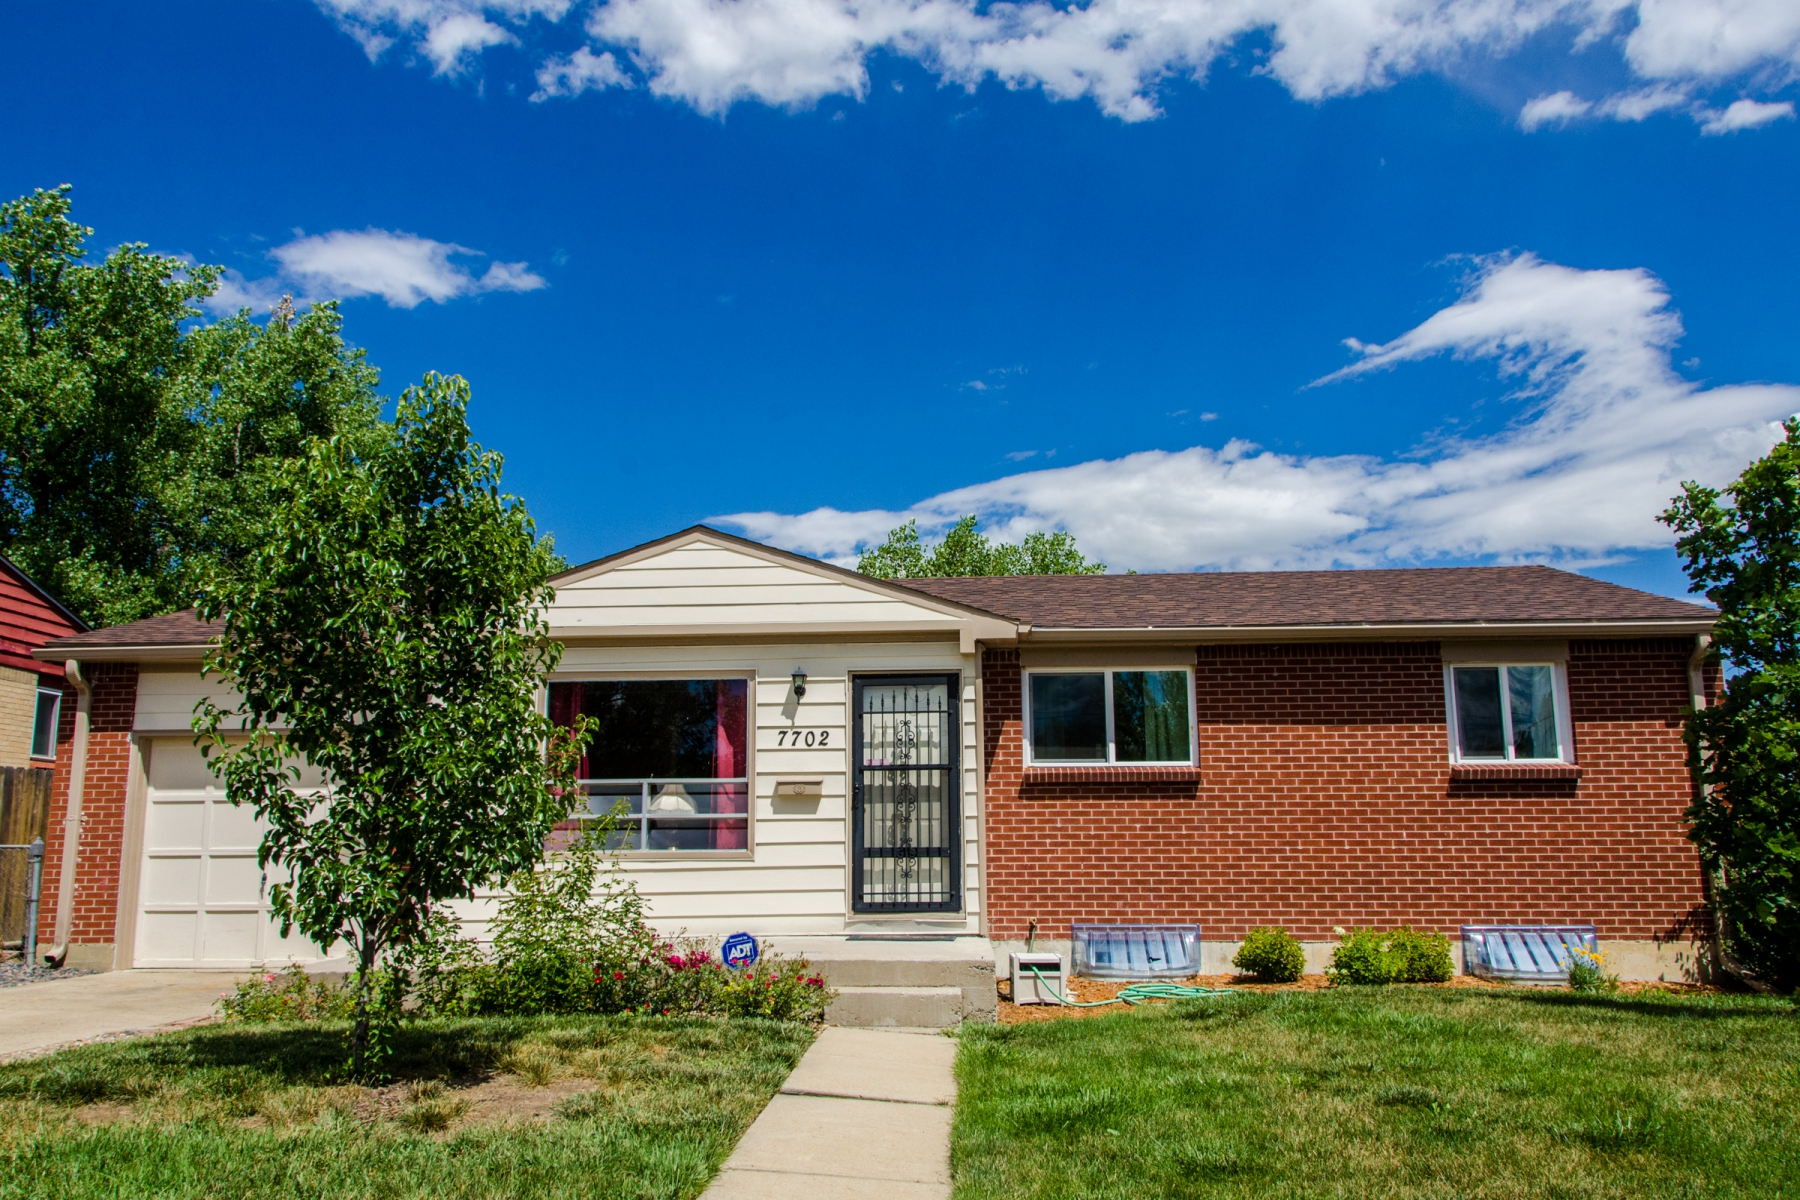 7702 Zuni St, Denver, CO 80221